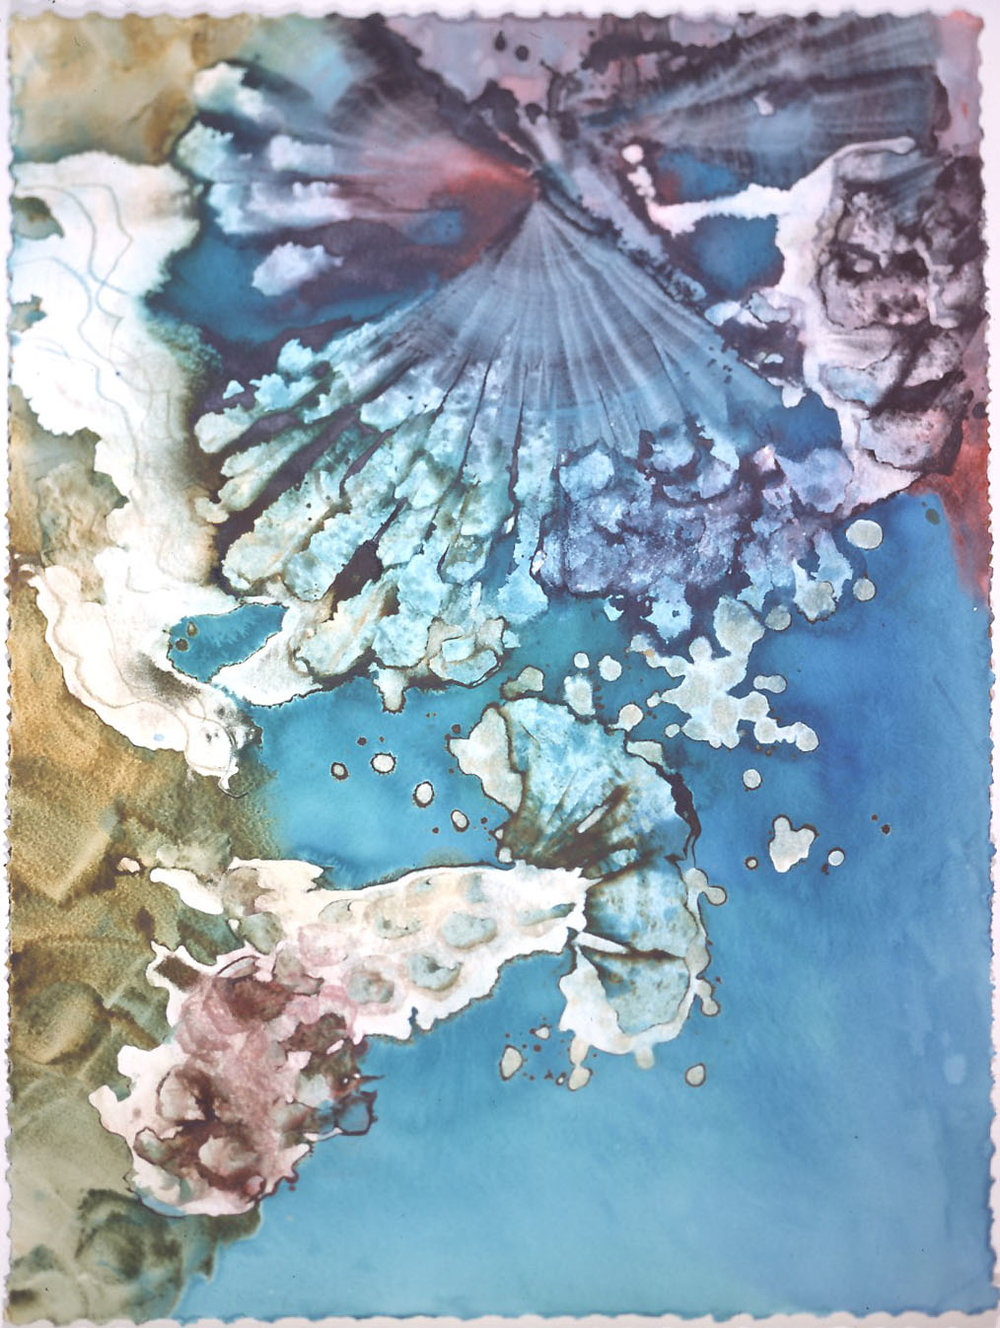 """""""Blue Crystal"""" 1998, Crystal Reef Series, acrylic on paper, 42 x 32 inches (107 x 81 cm)."""